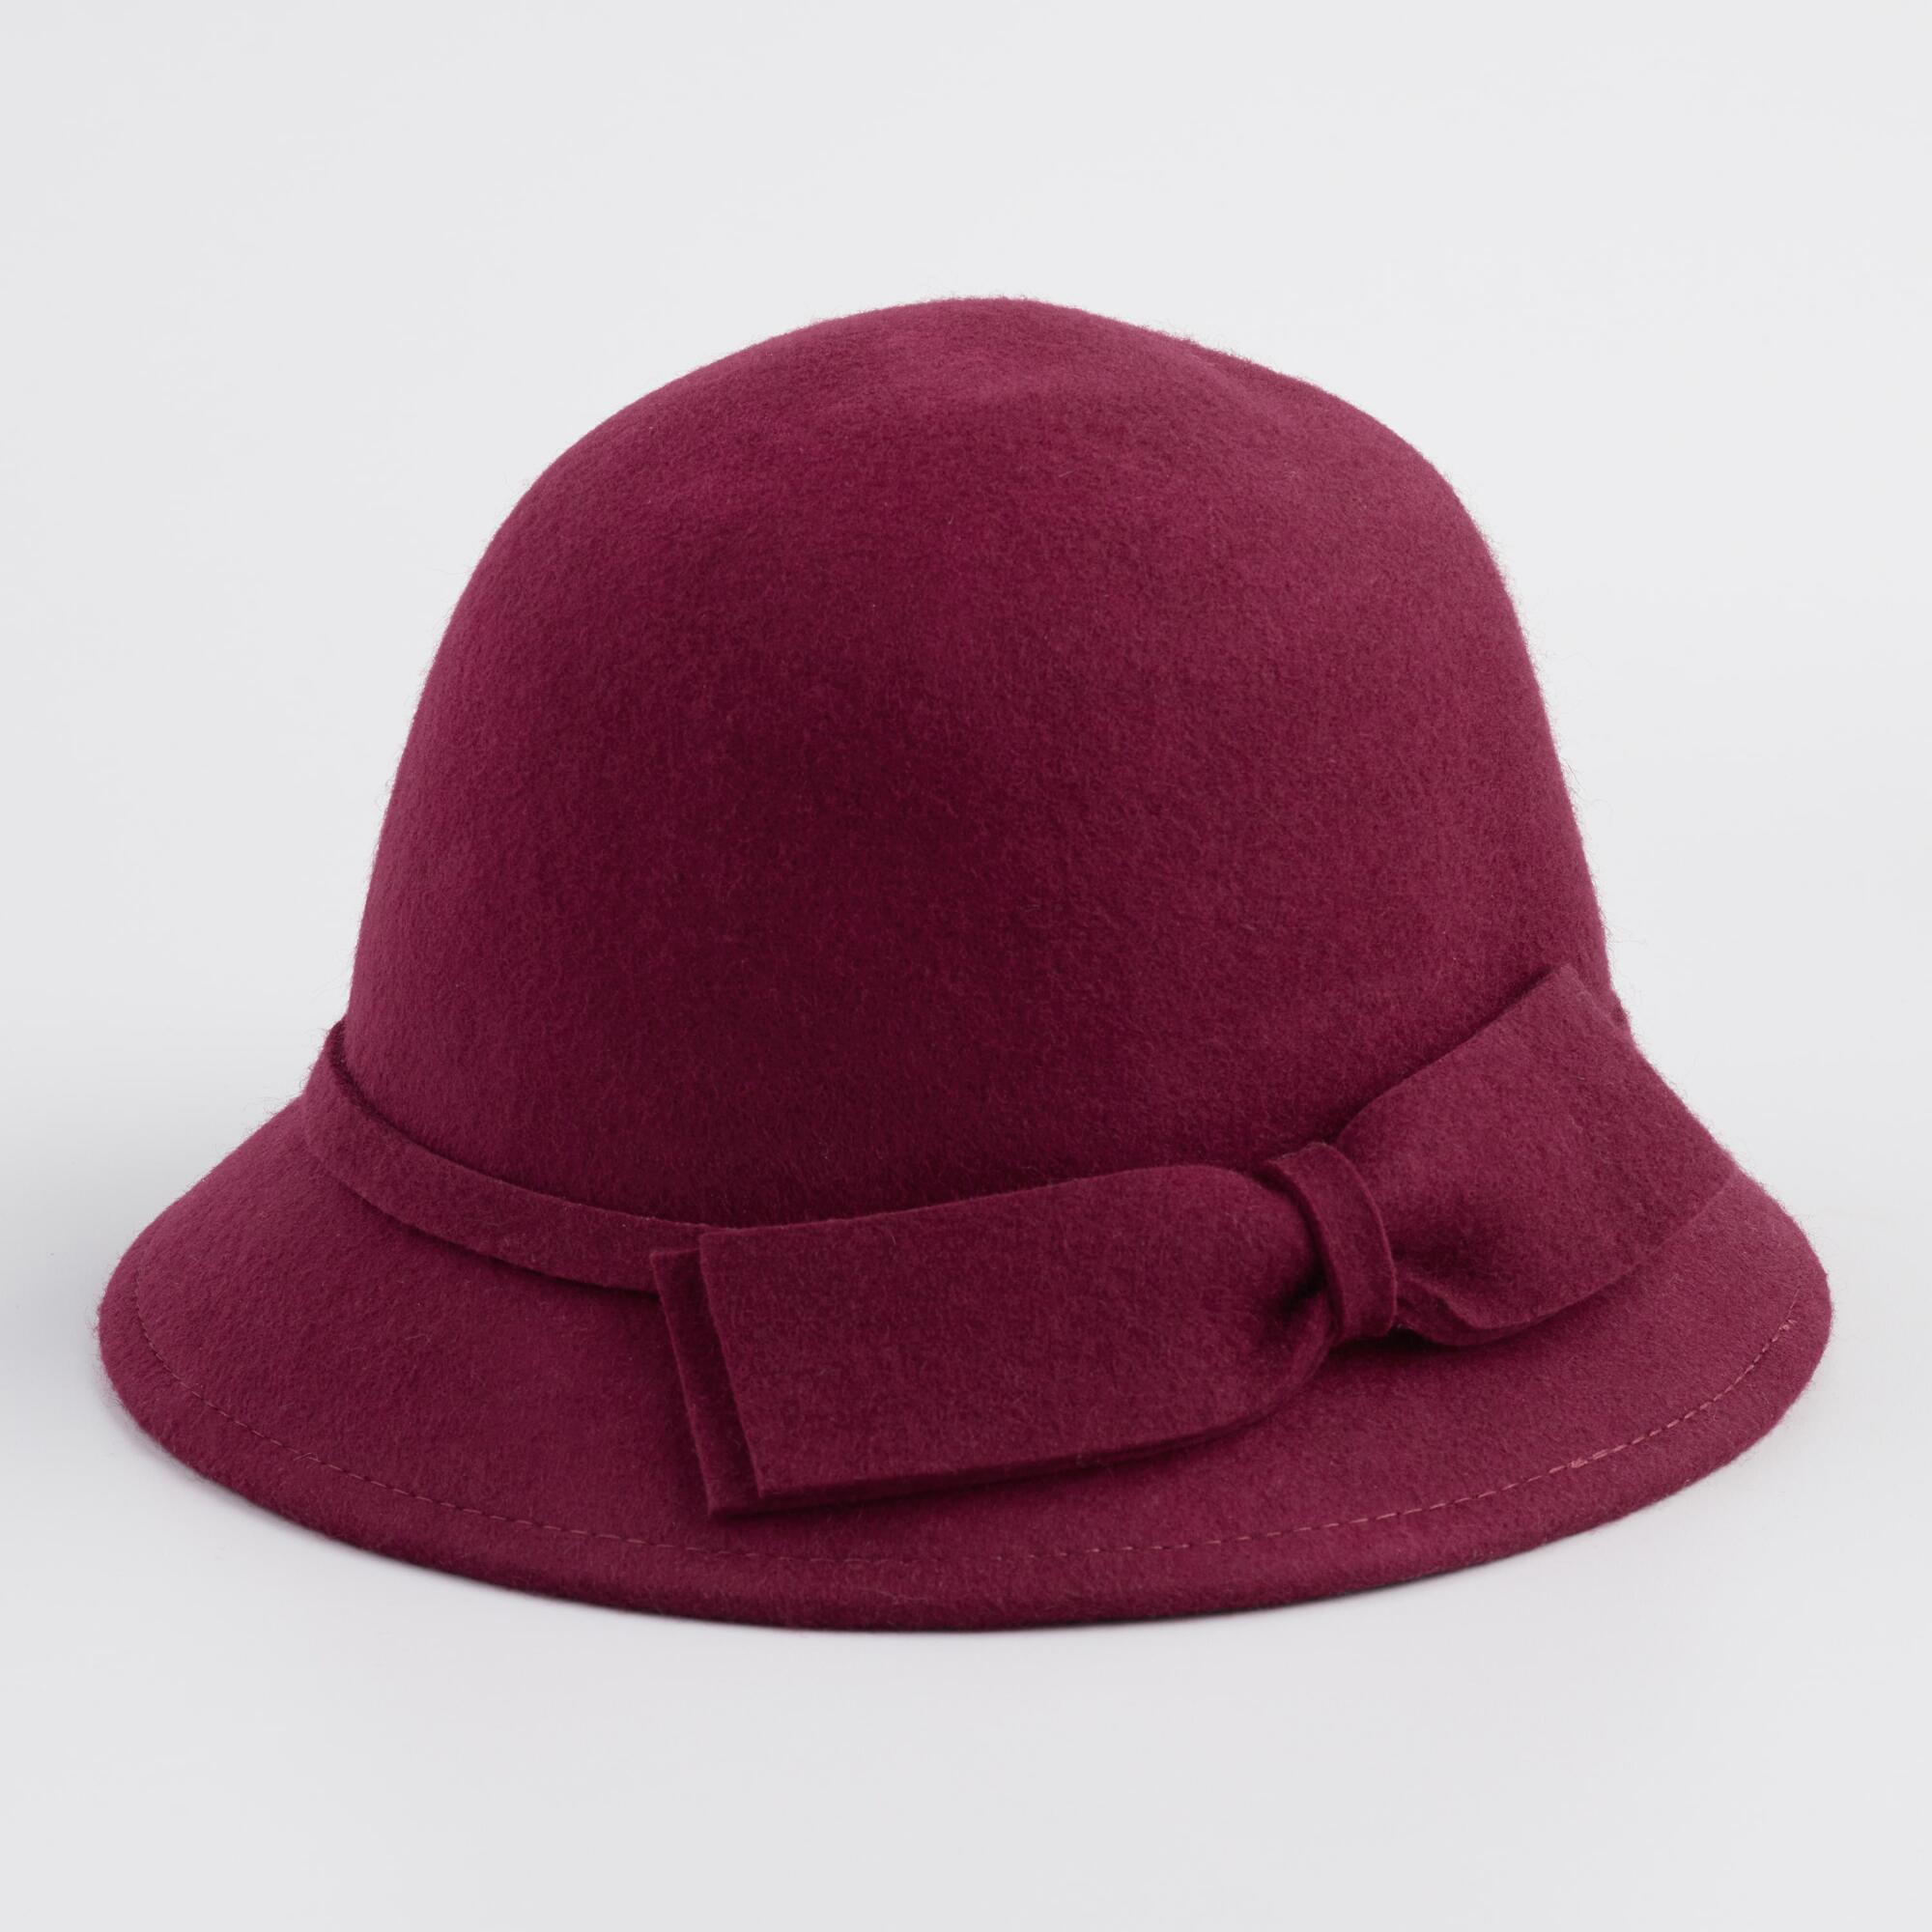 1930s Style Hats | Buy 30s Ladies Hats Wine Red Wool Cloche Hat by World Market $19.99 AT vintagedancer.com